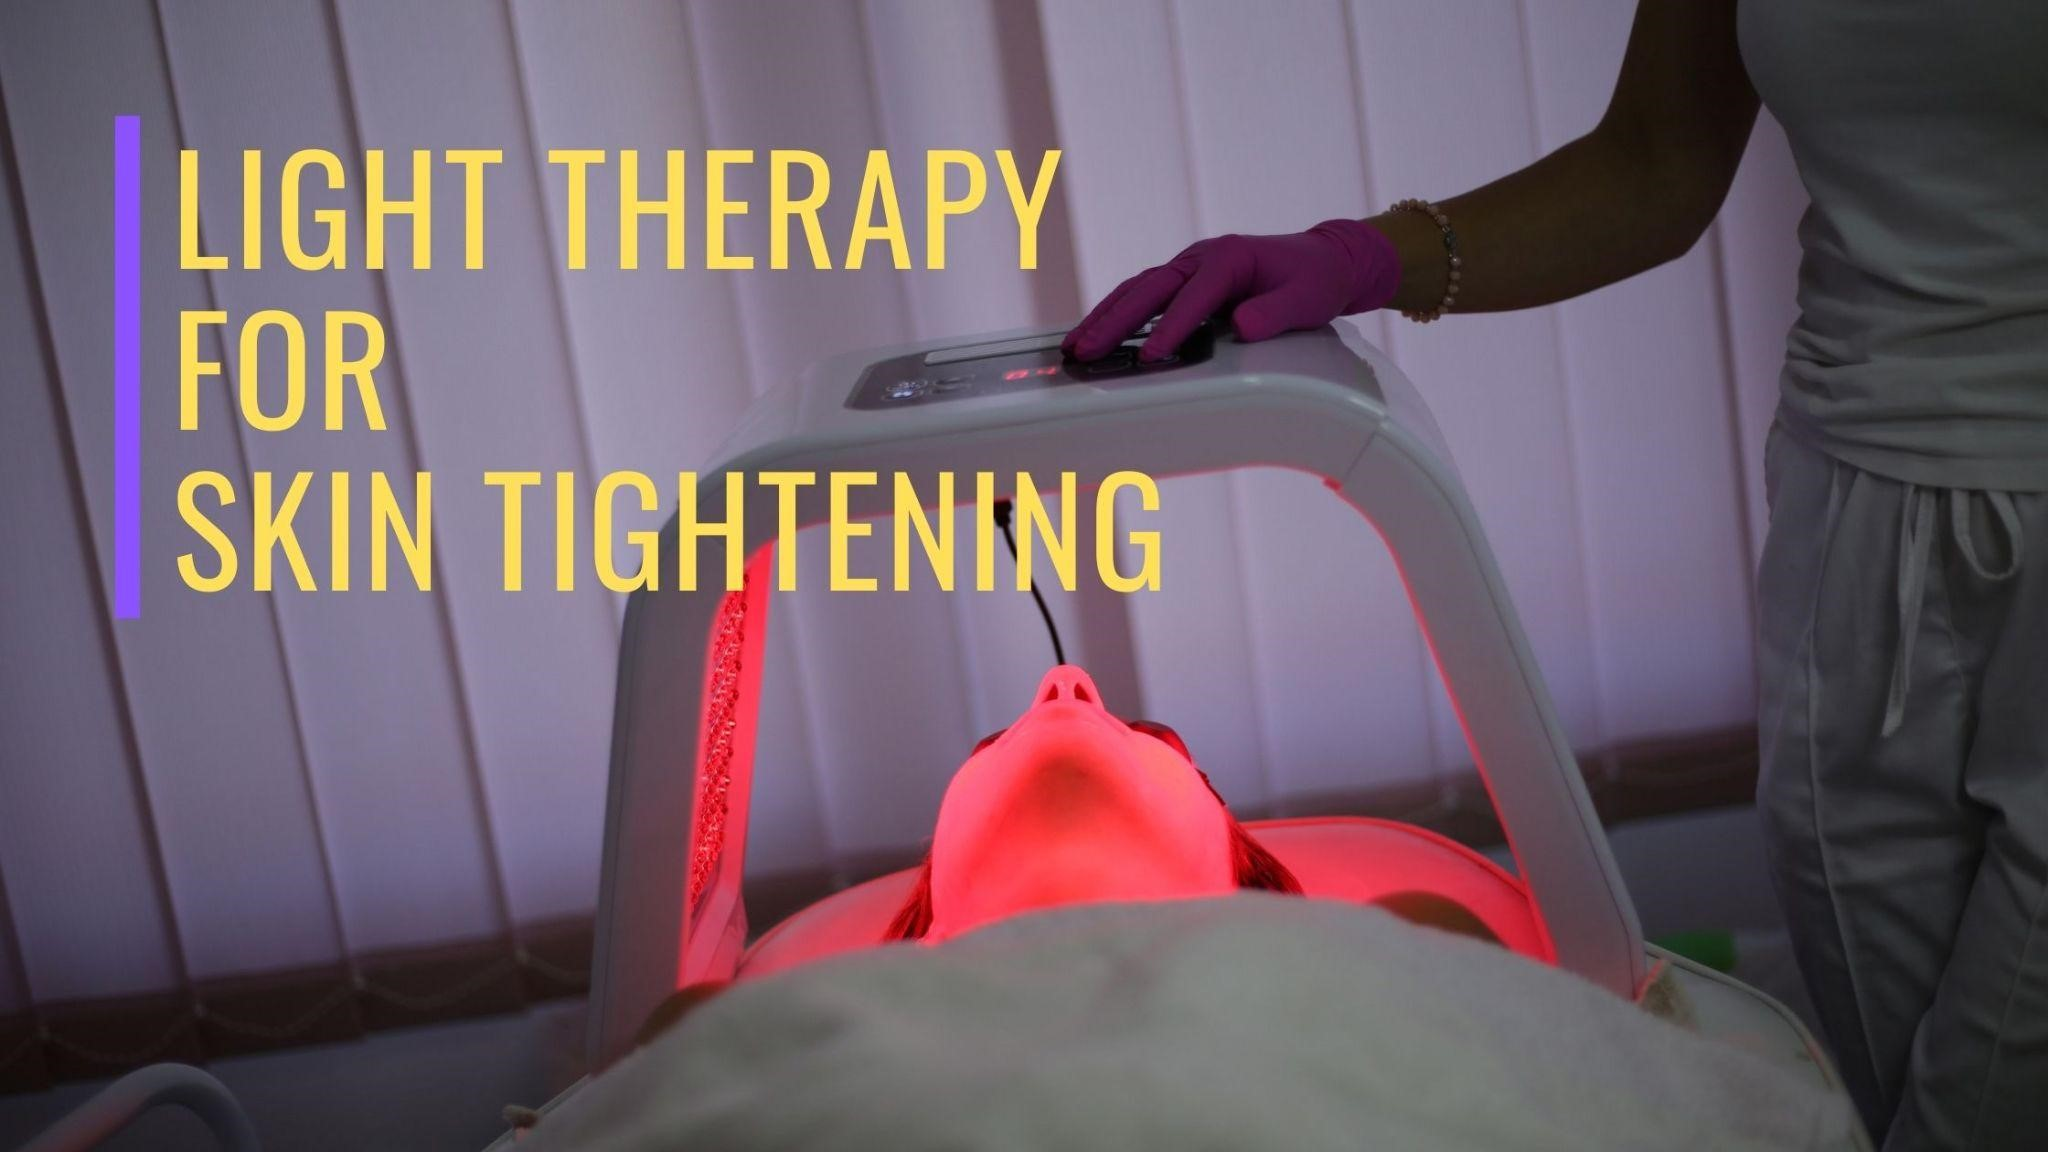 Light Therapy for Skin Tightening